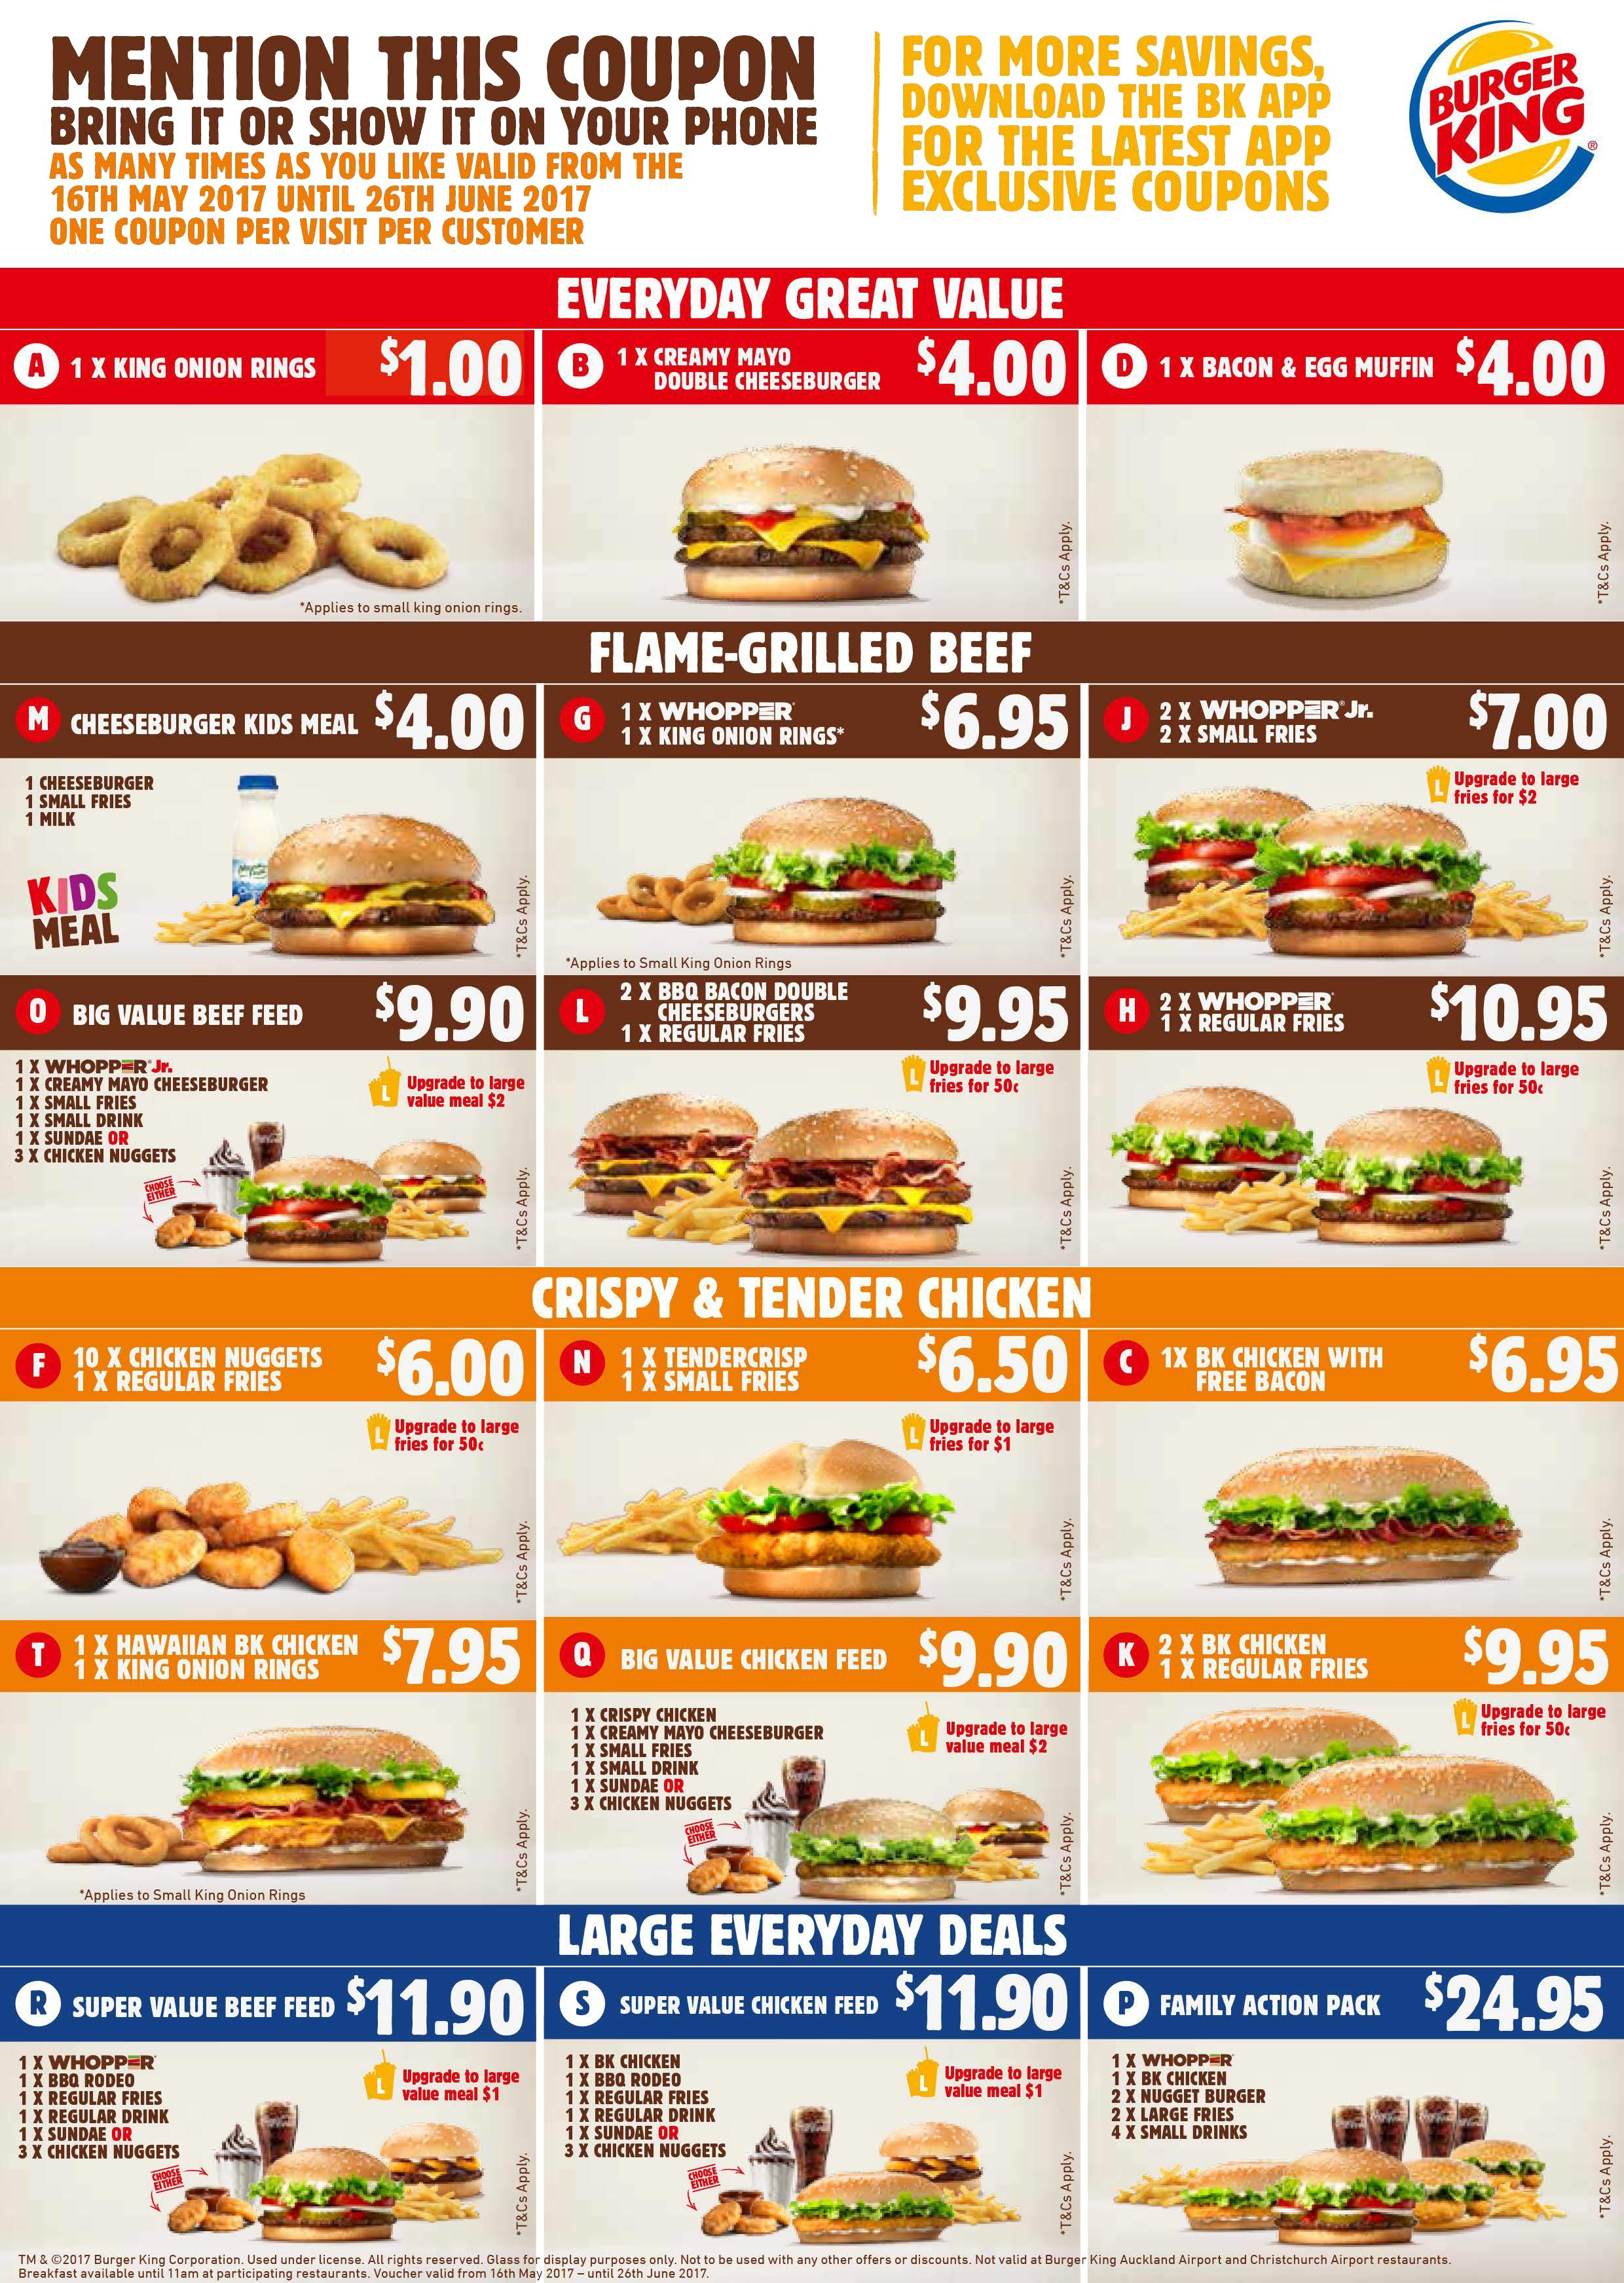 graphic relating to Bk Printable Application named Burger king coupon nz / Knight coupon codes